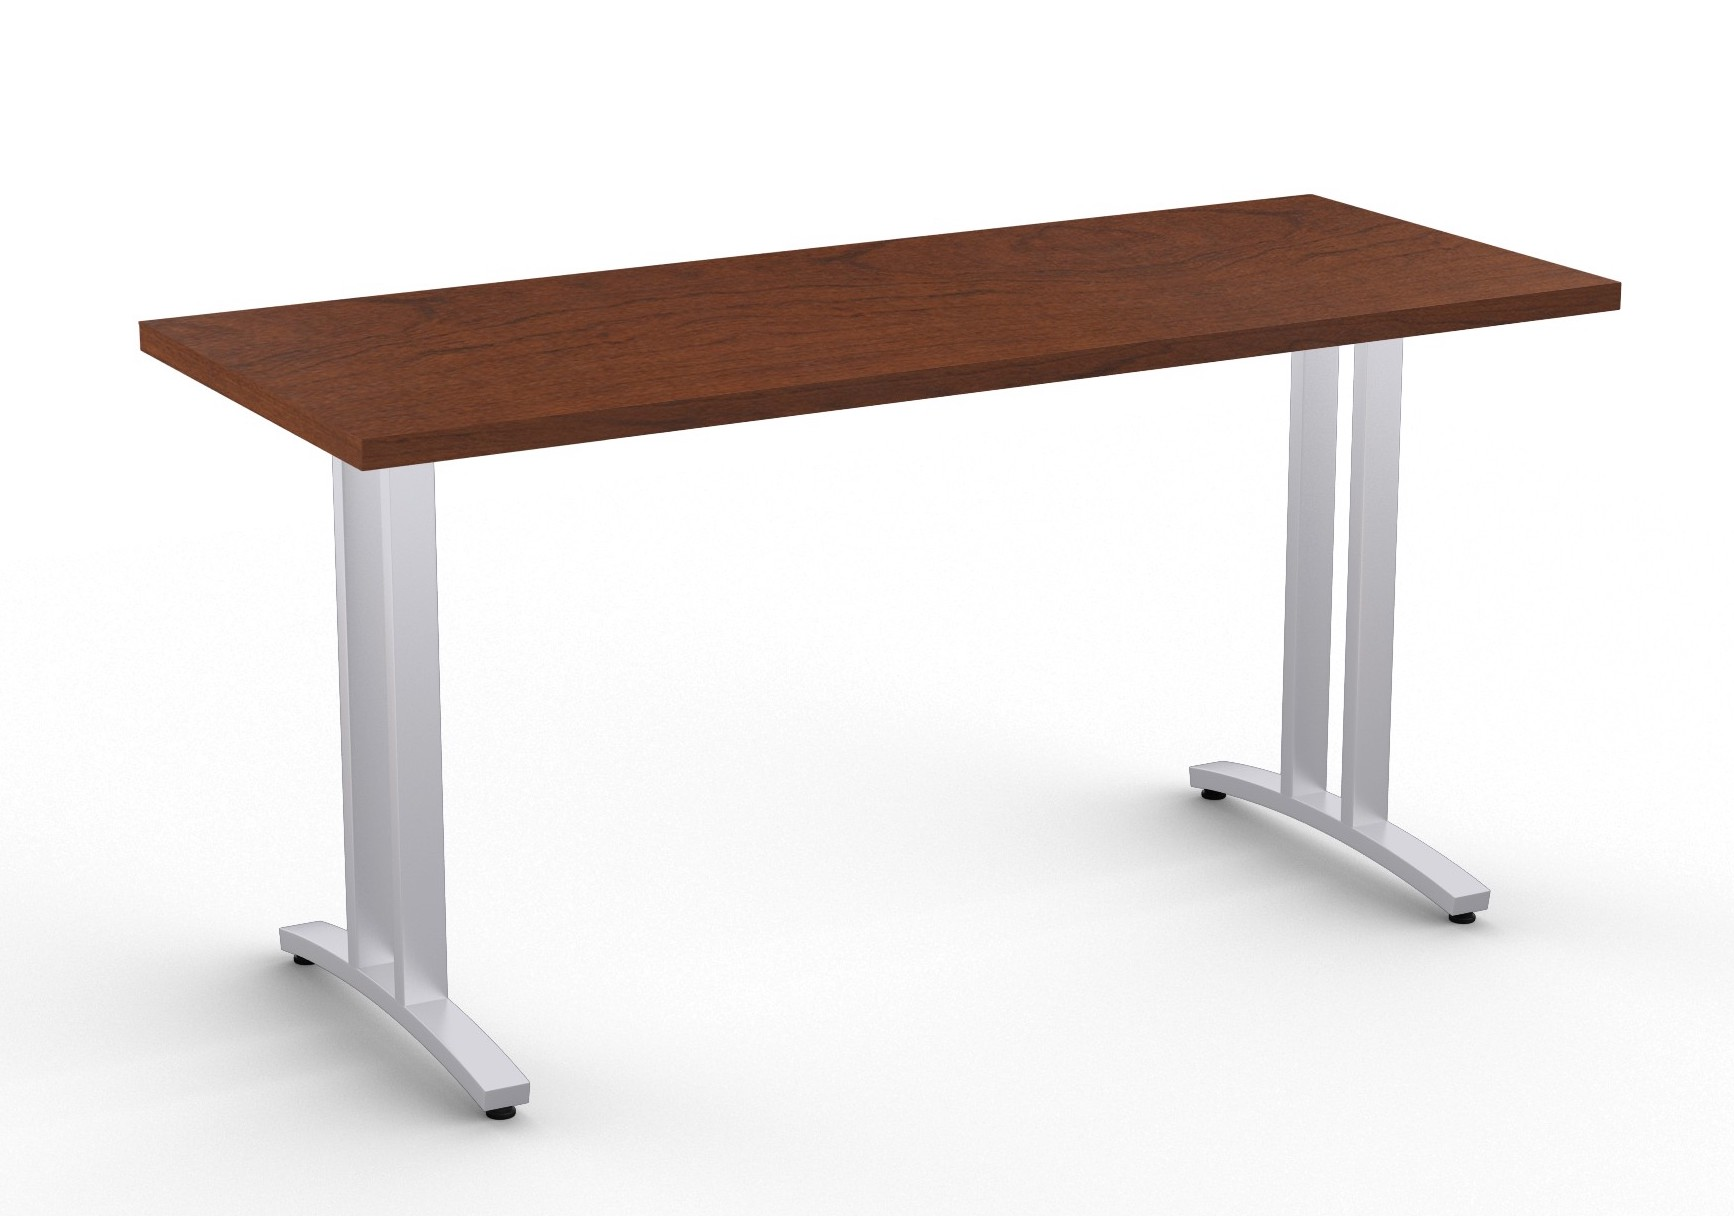 special-t structure 2tl work table in mahogany